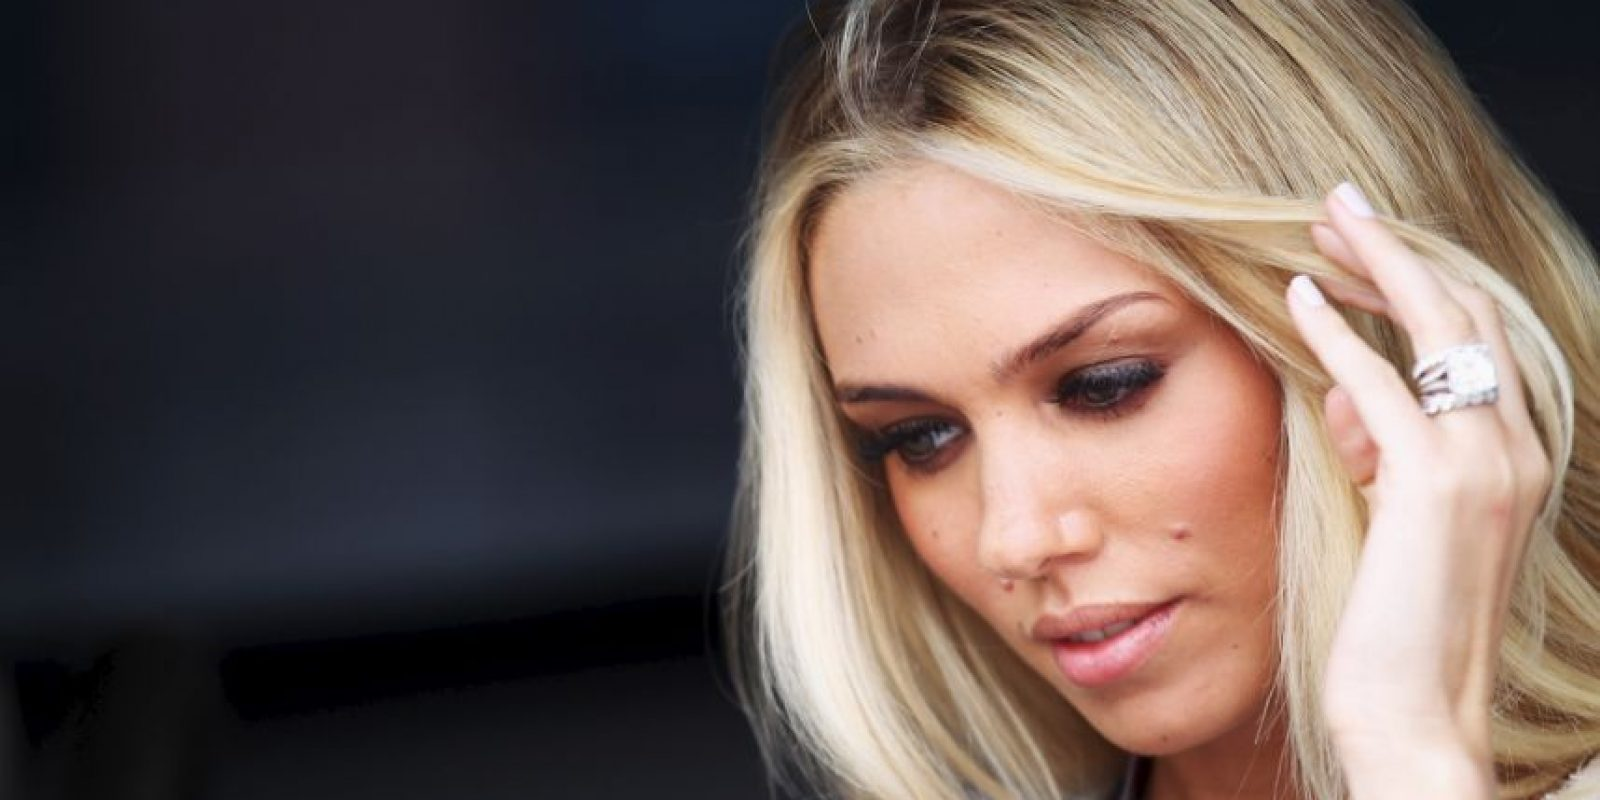 4. Petra Ecclestone Foto: Getty Images